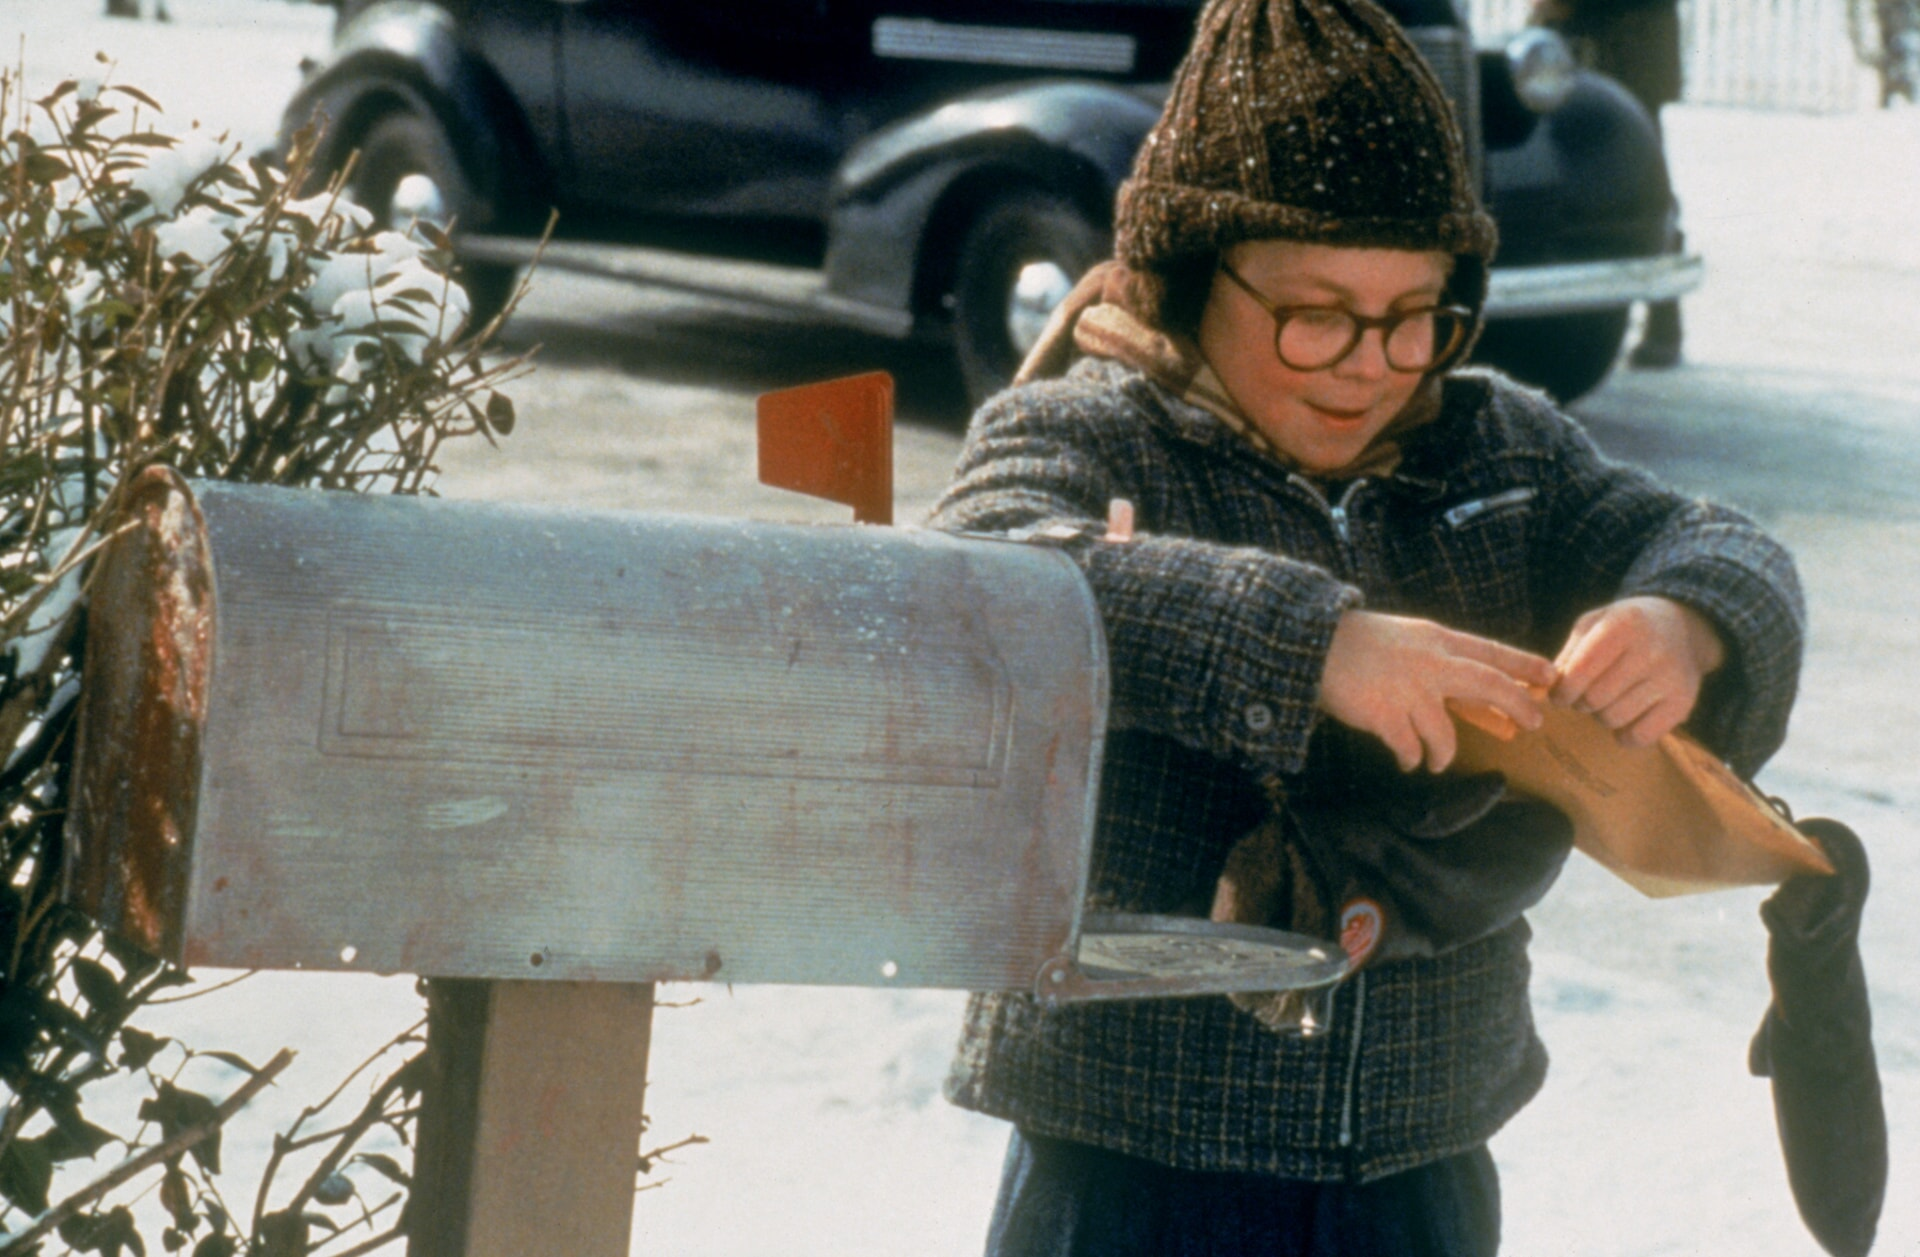 Ralphie opening a package at the mailbox